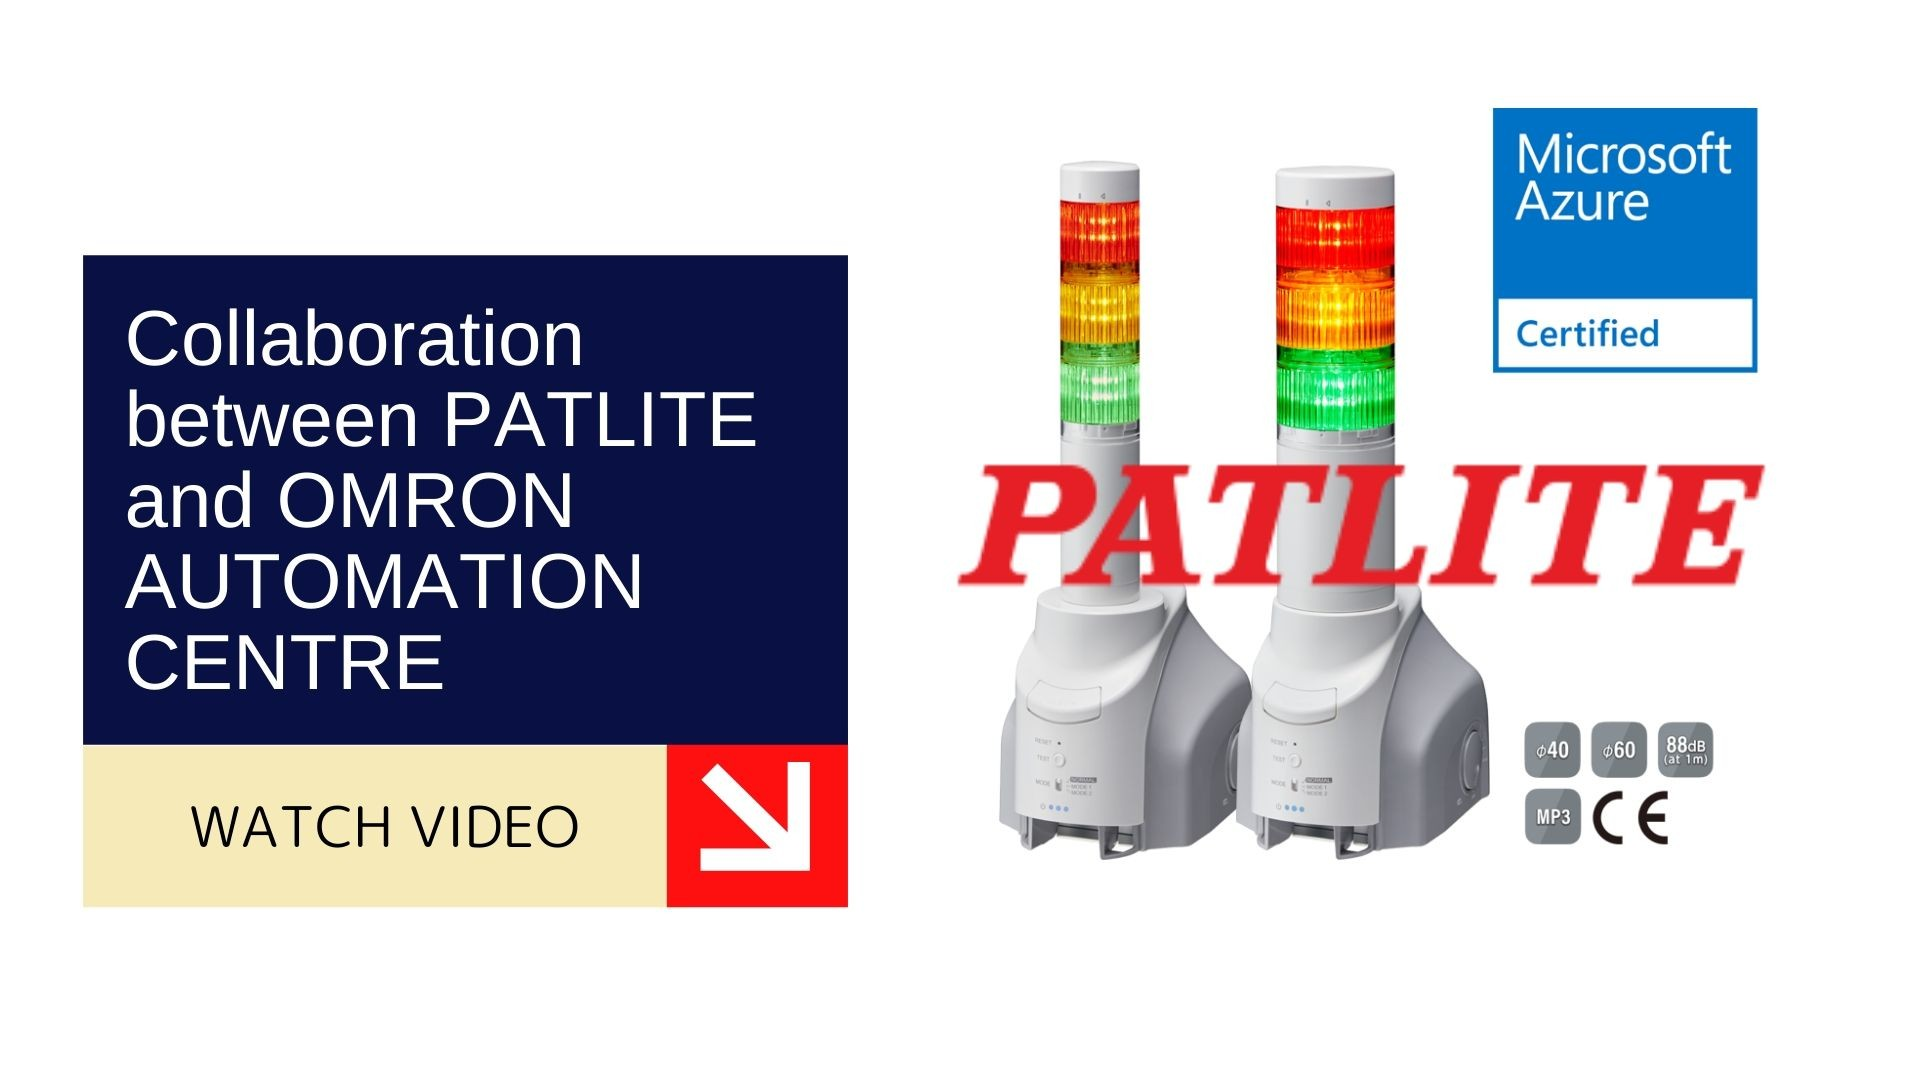 Collaboration between PATLITE and OMRON AUTOMATION CENTRE 1